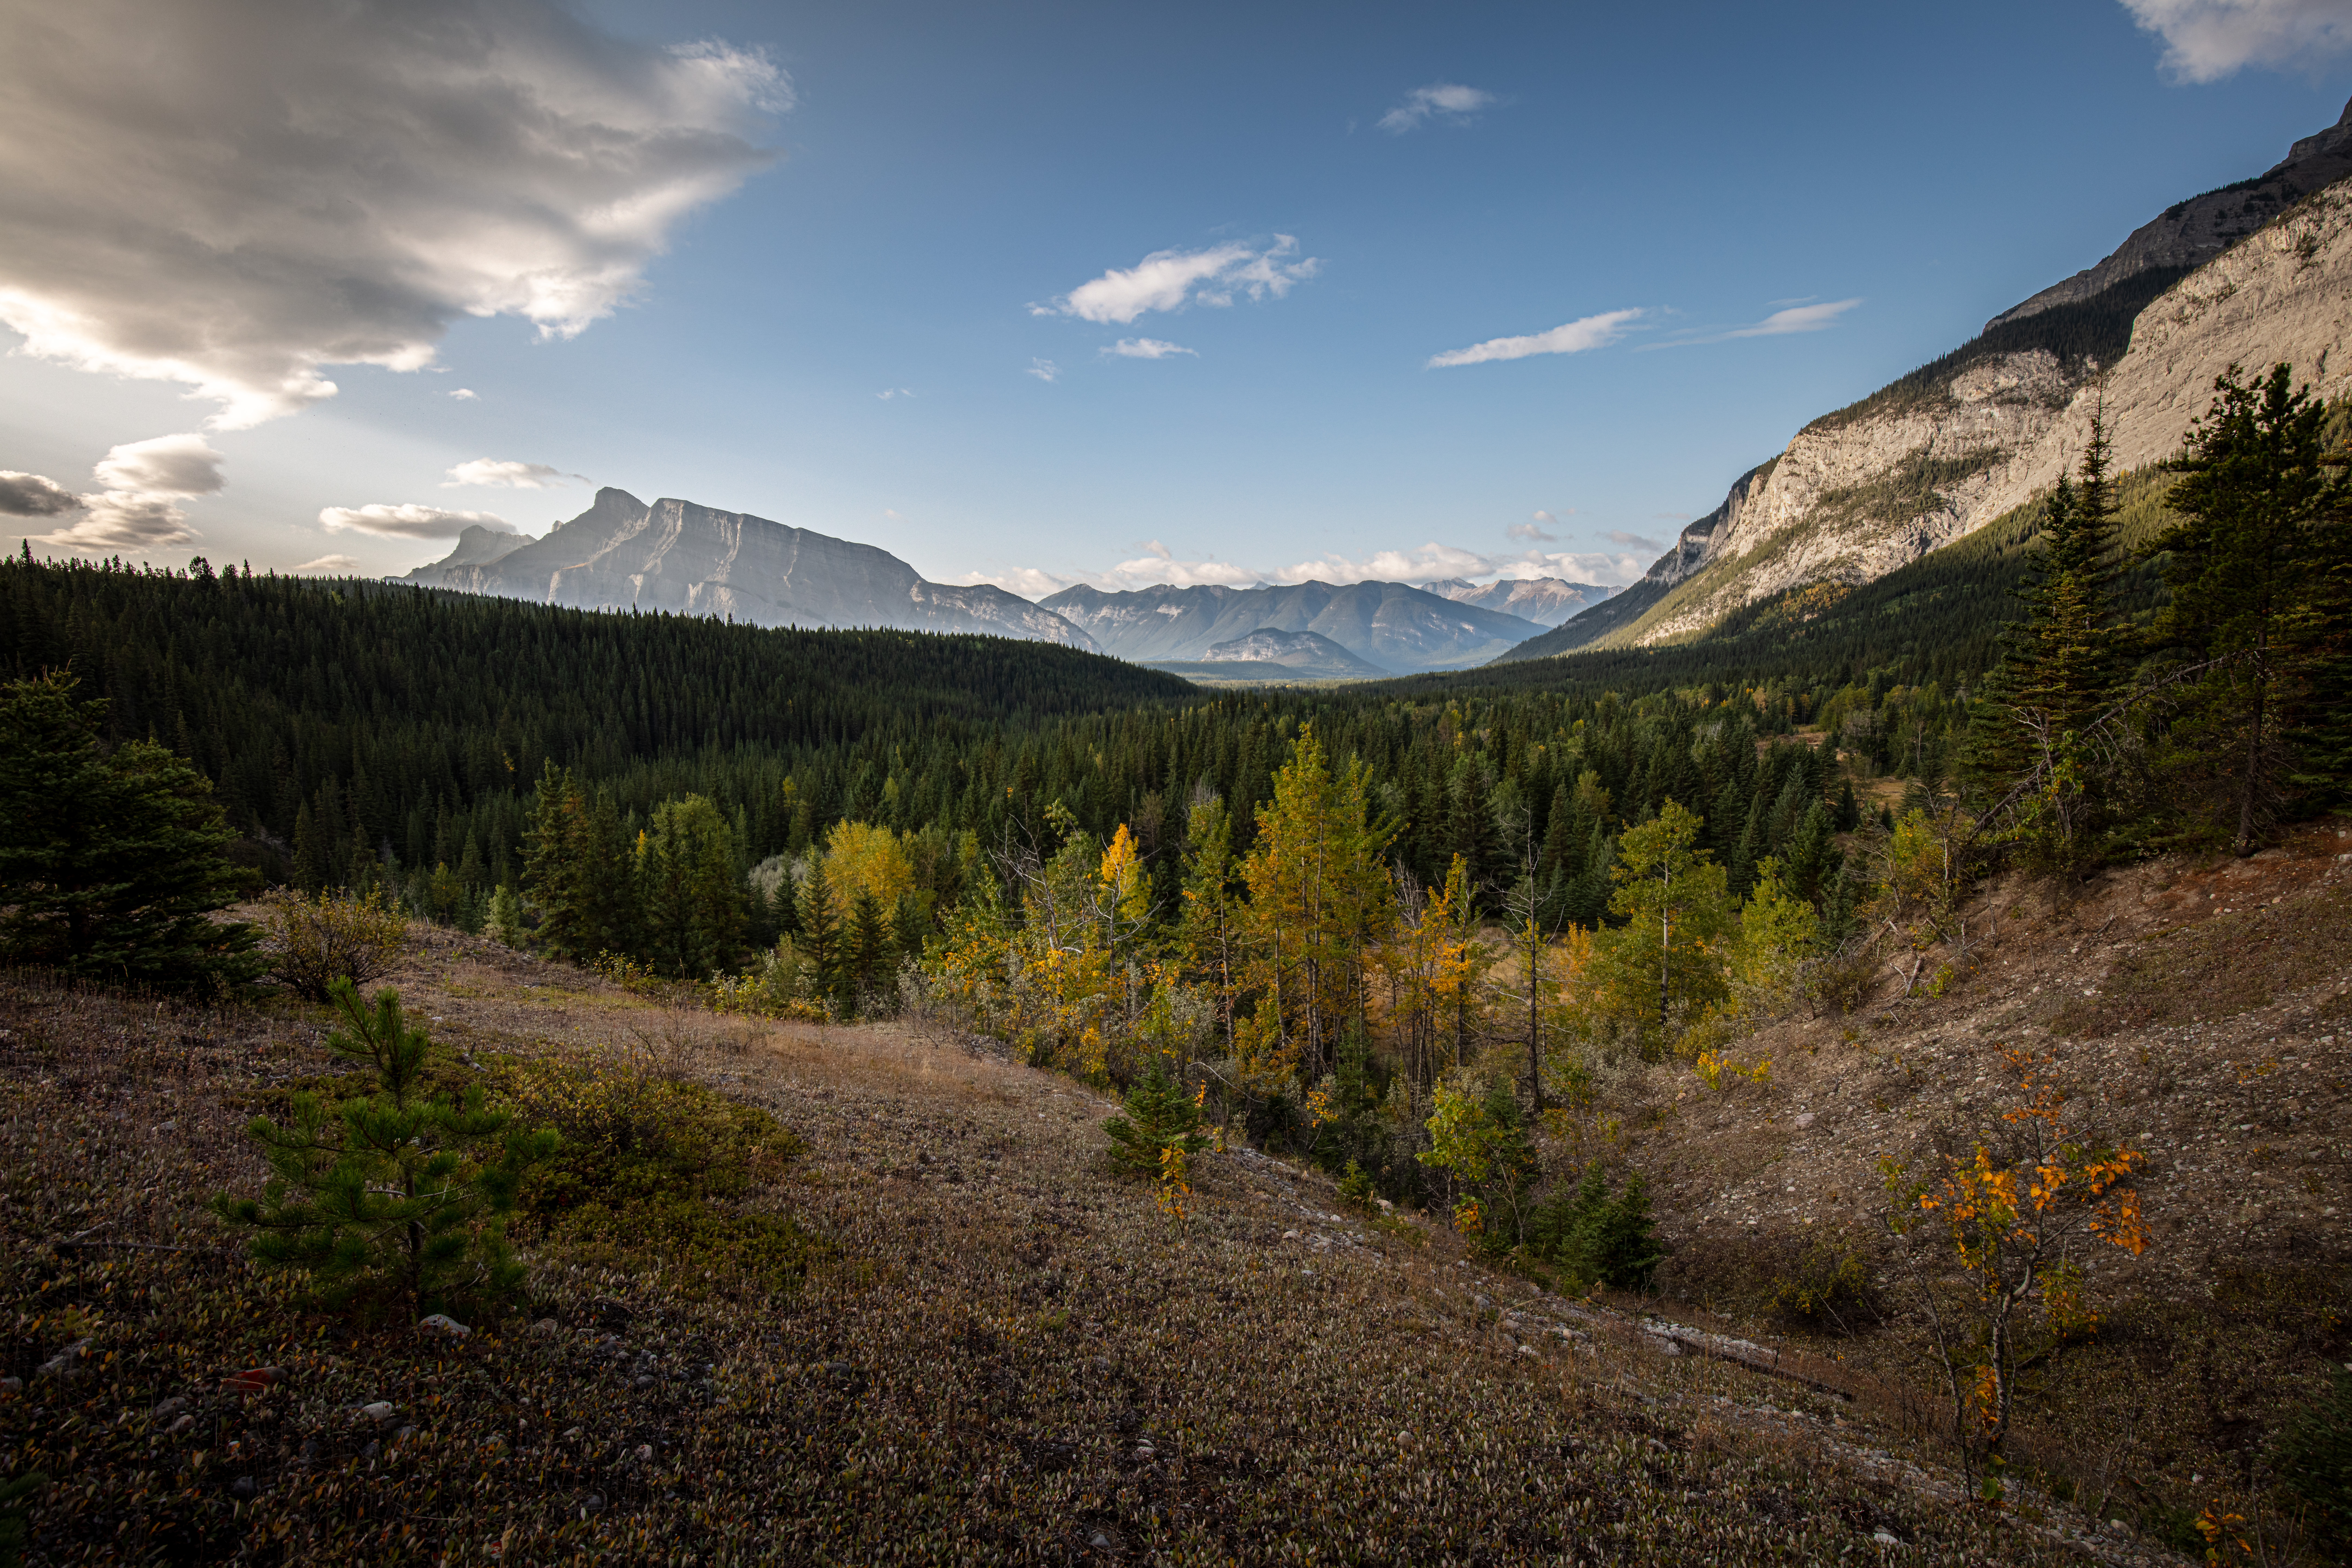 Looking down on the Bankhead Valley, Alberta, Canada as the sun continues to rise on a beautiful September morning